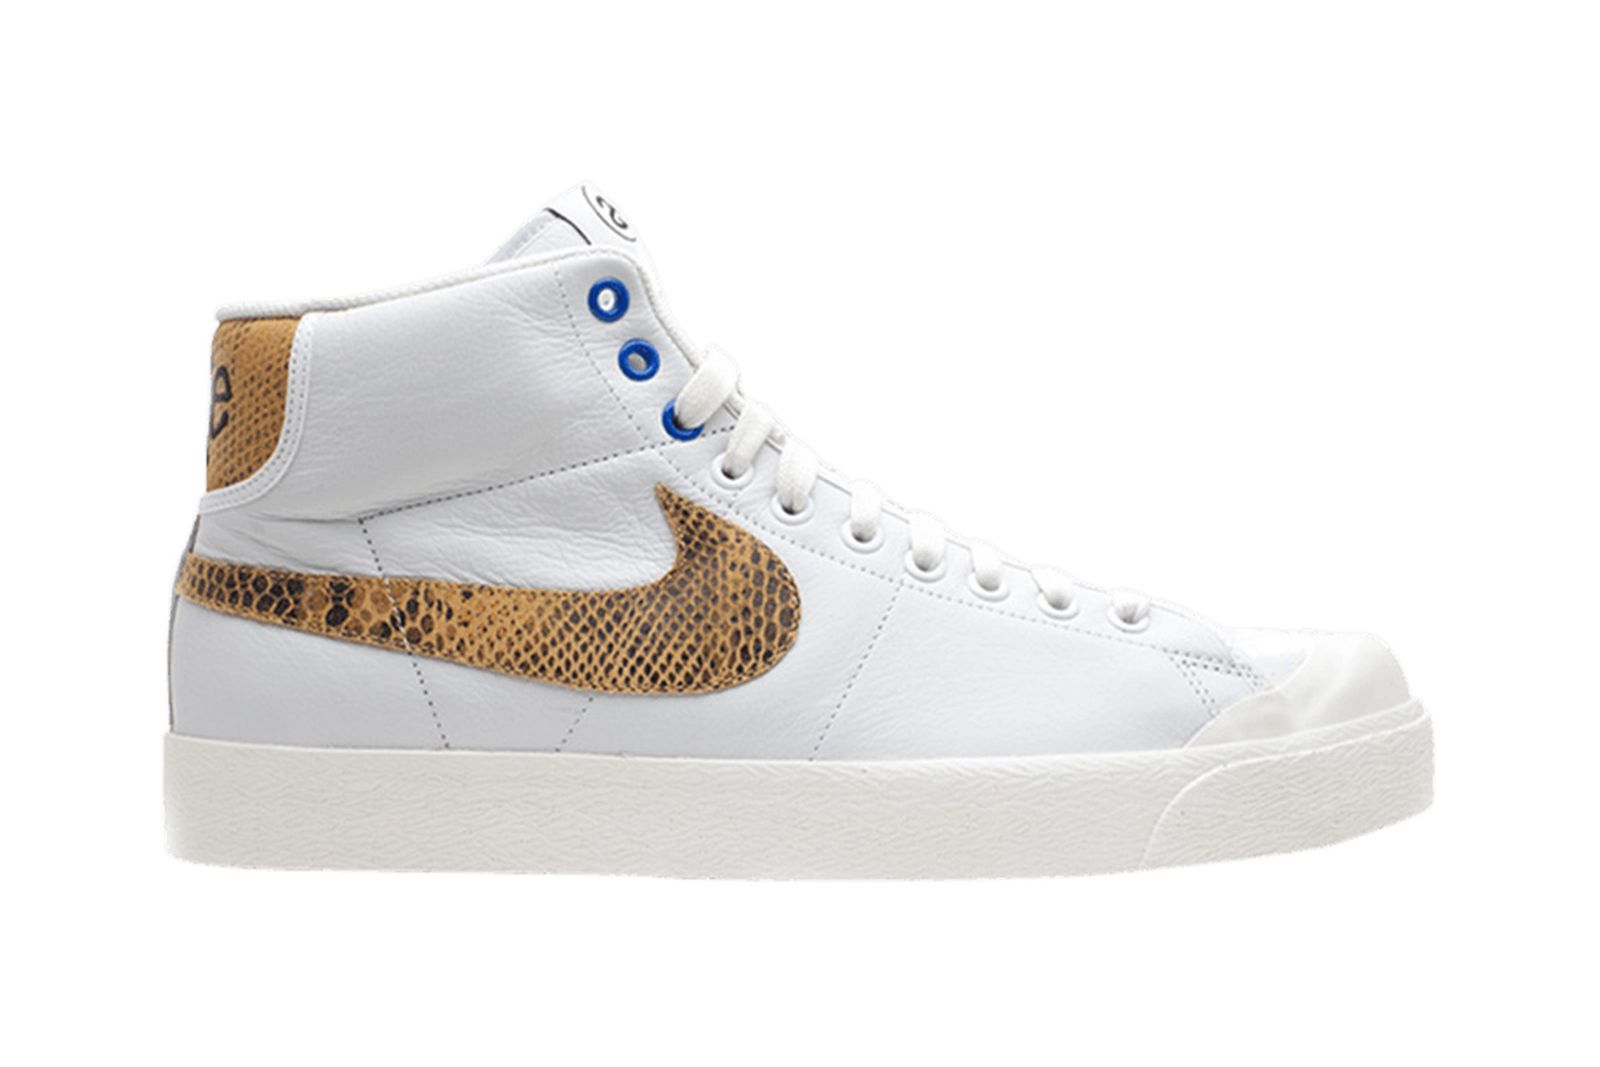 stussy-nike-sneaker-collaboration-roundup-16